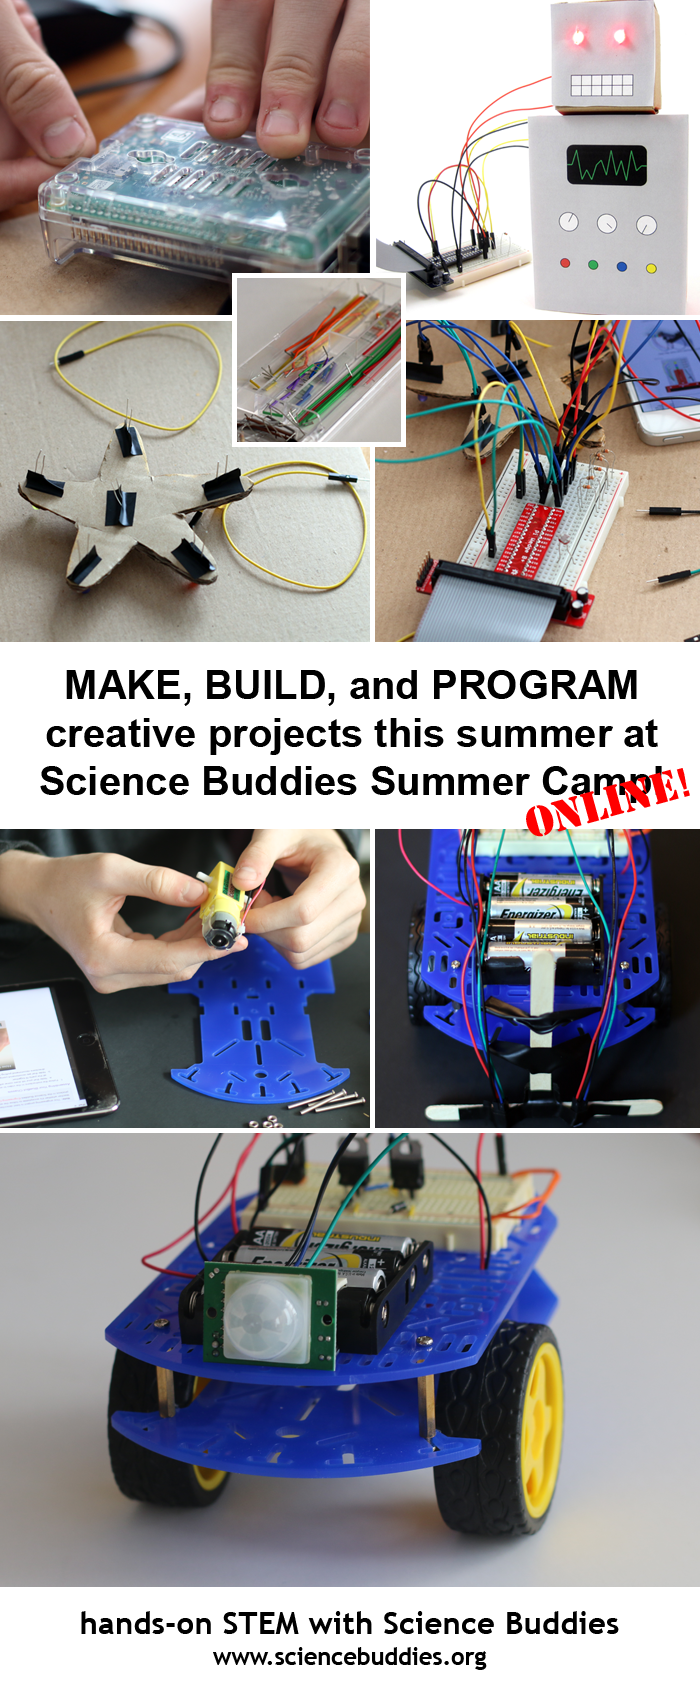 Science Buddies Online Summer STEM Camp / New Online Summer STEM Camp